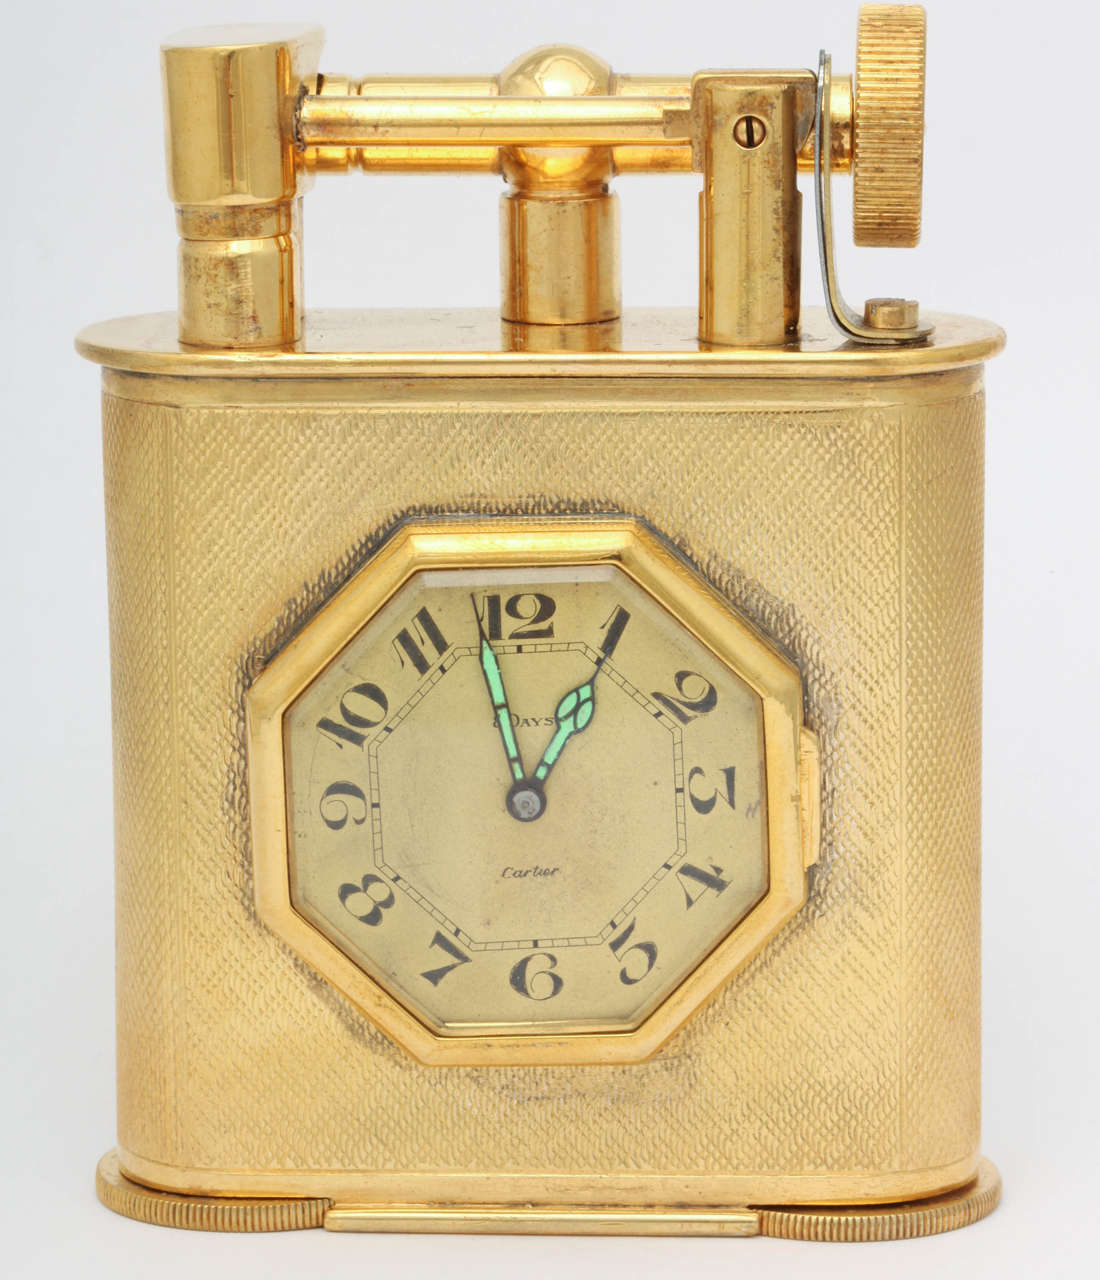 A stunning and exceptionally rare, English made, gold plated table lighter, made for and retailed by Cartier.  The lighter holds an eight day clock set in an octagonal frame in the center of the lighter's body.   The body is fully engine turned and